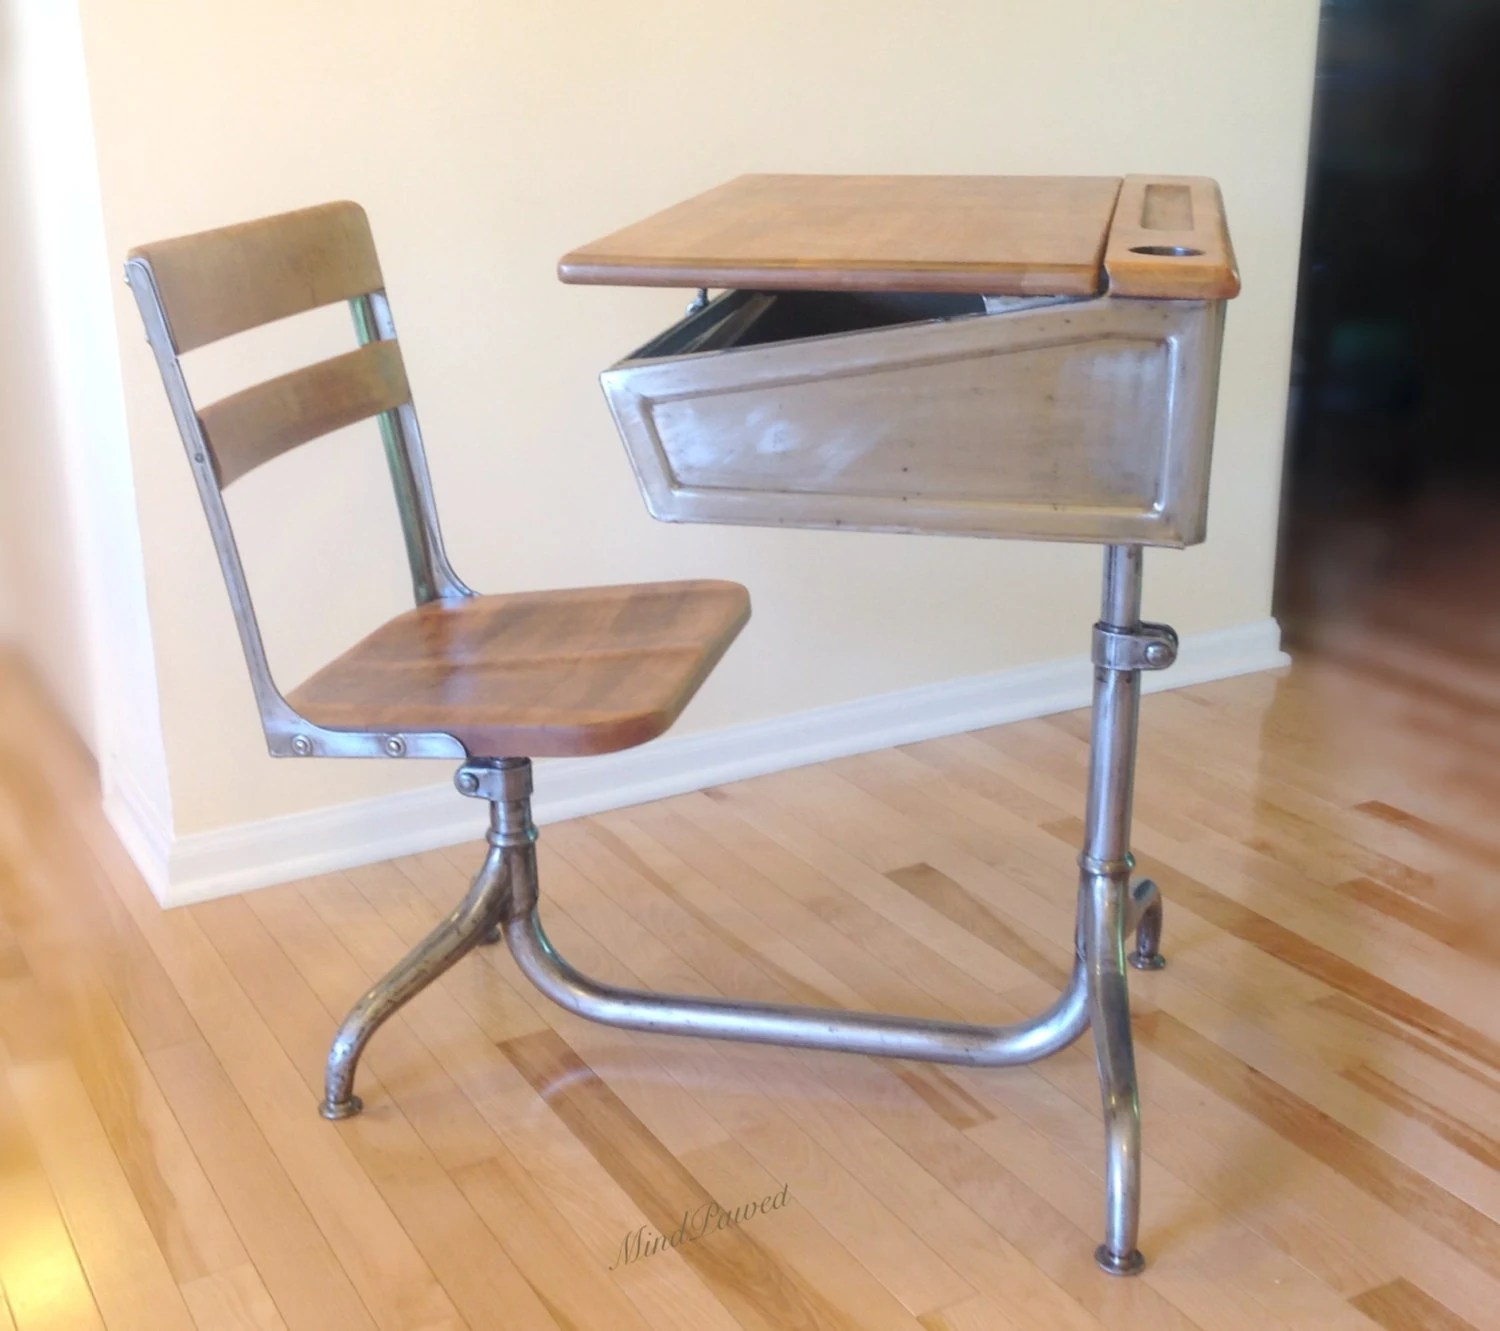 vintage school desk chair combo 111 navy industrial steel and wood with